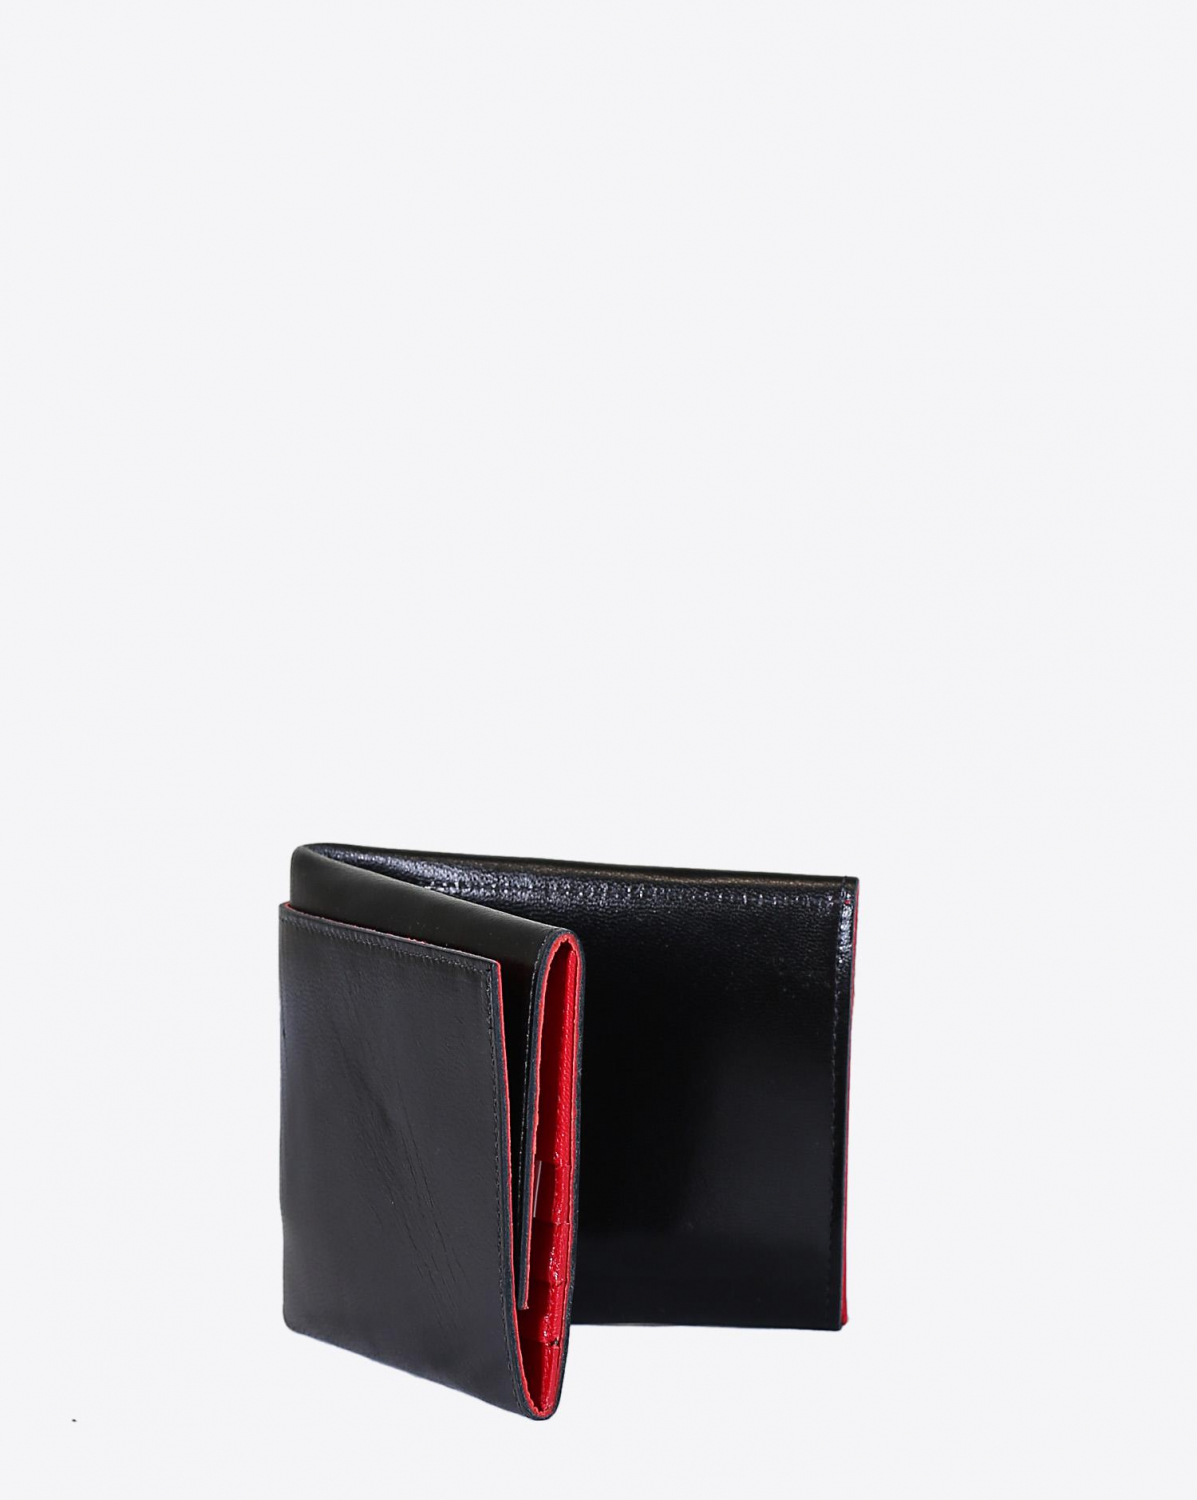 Marie Turnor Origami Wallet - Black Red